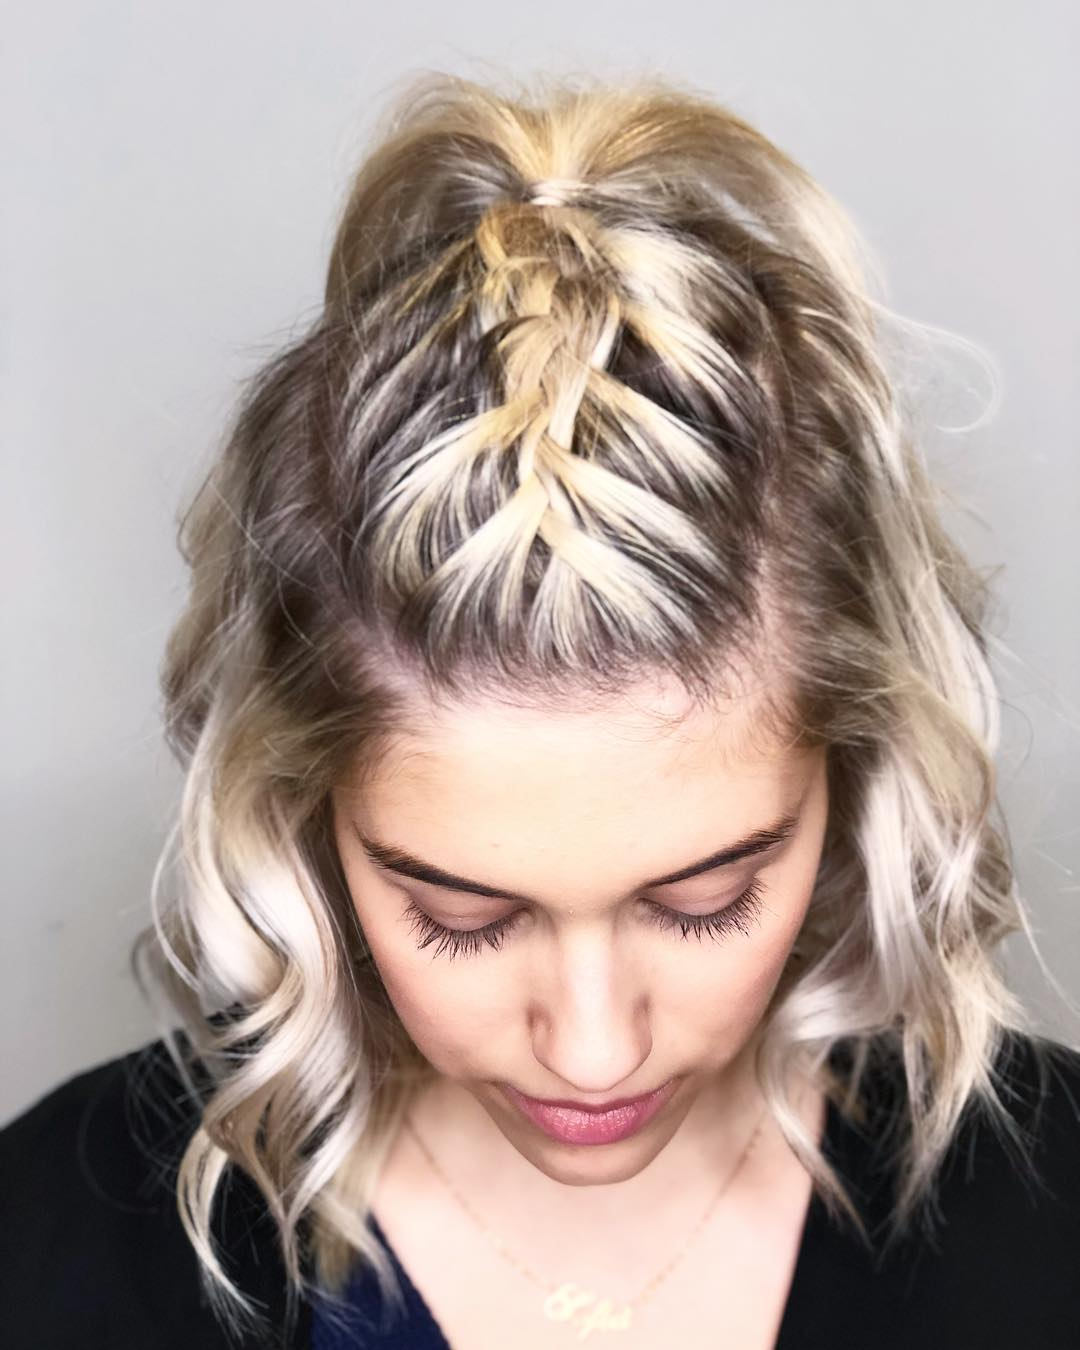 11 Easy Ways To Style Your Hair - Hairstyles For Short Hair  Meesho